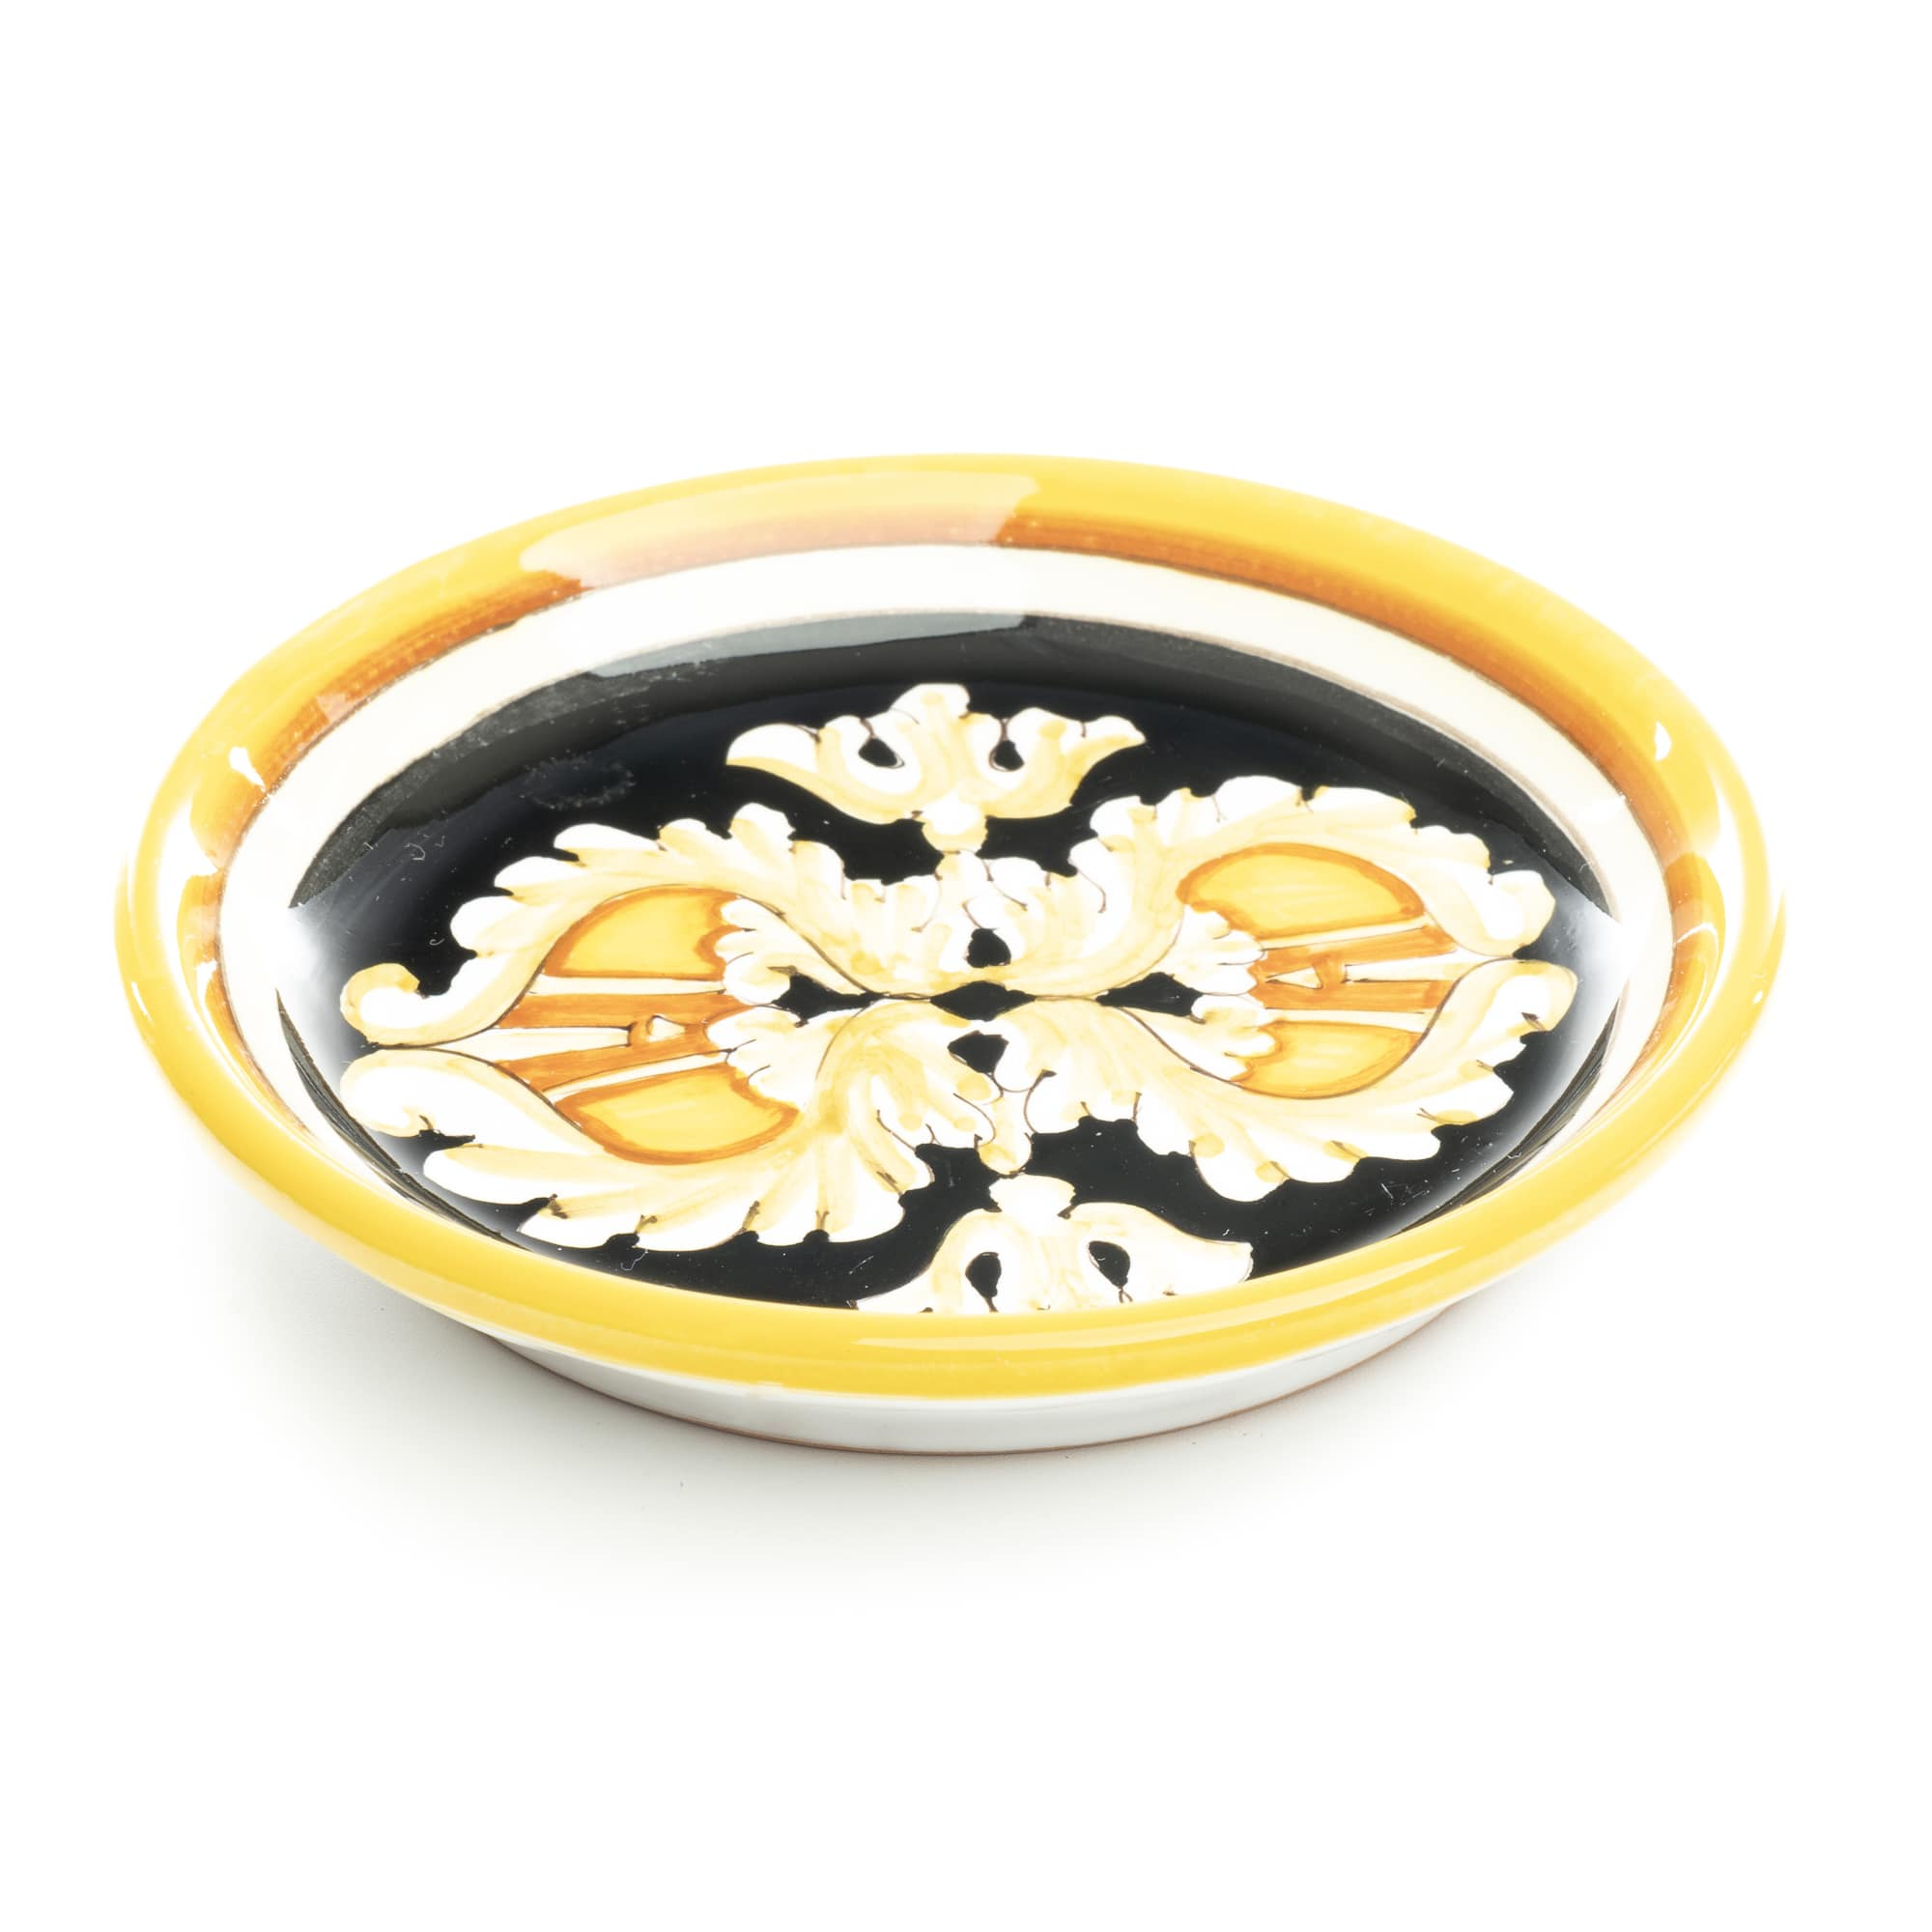 Nero e Oro Wine Coaster